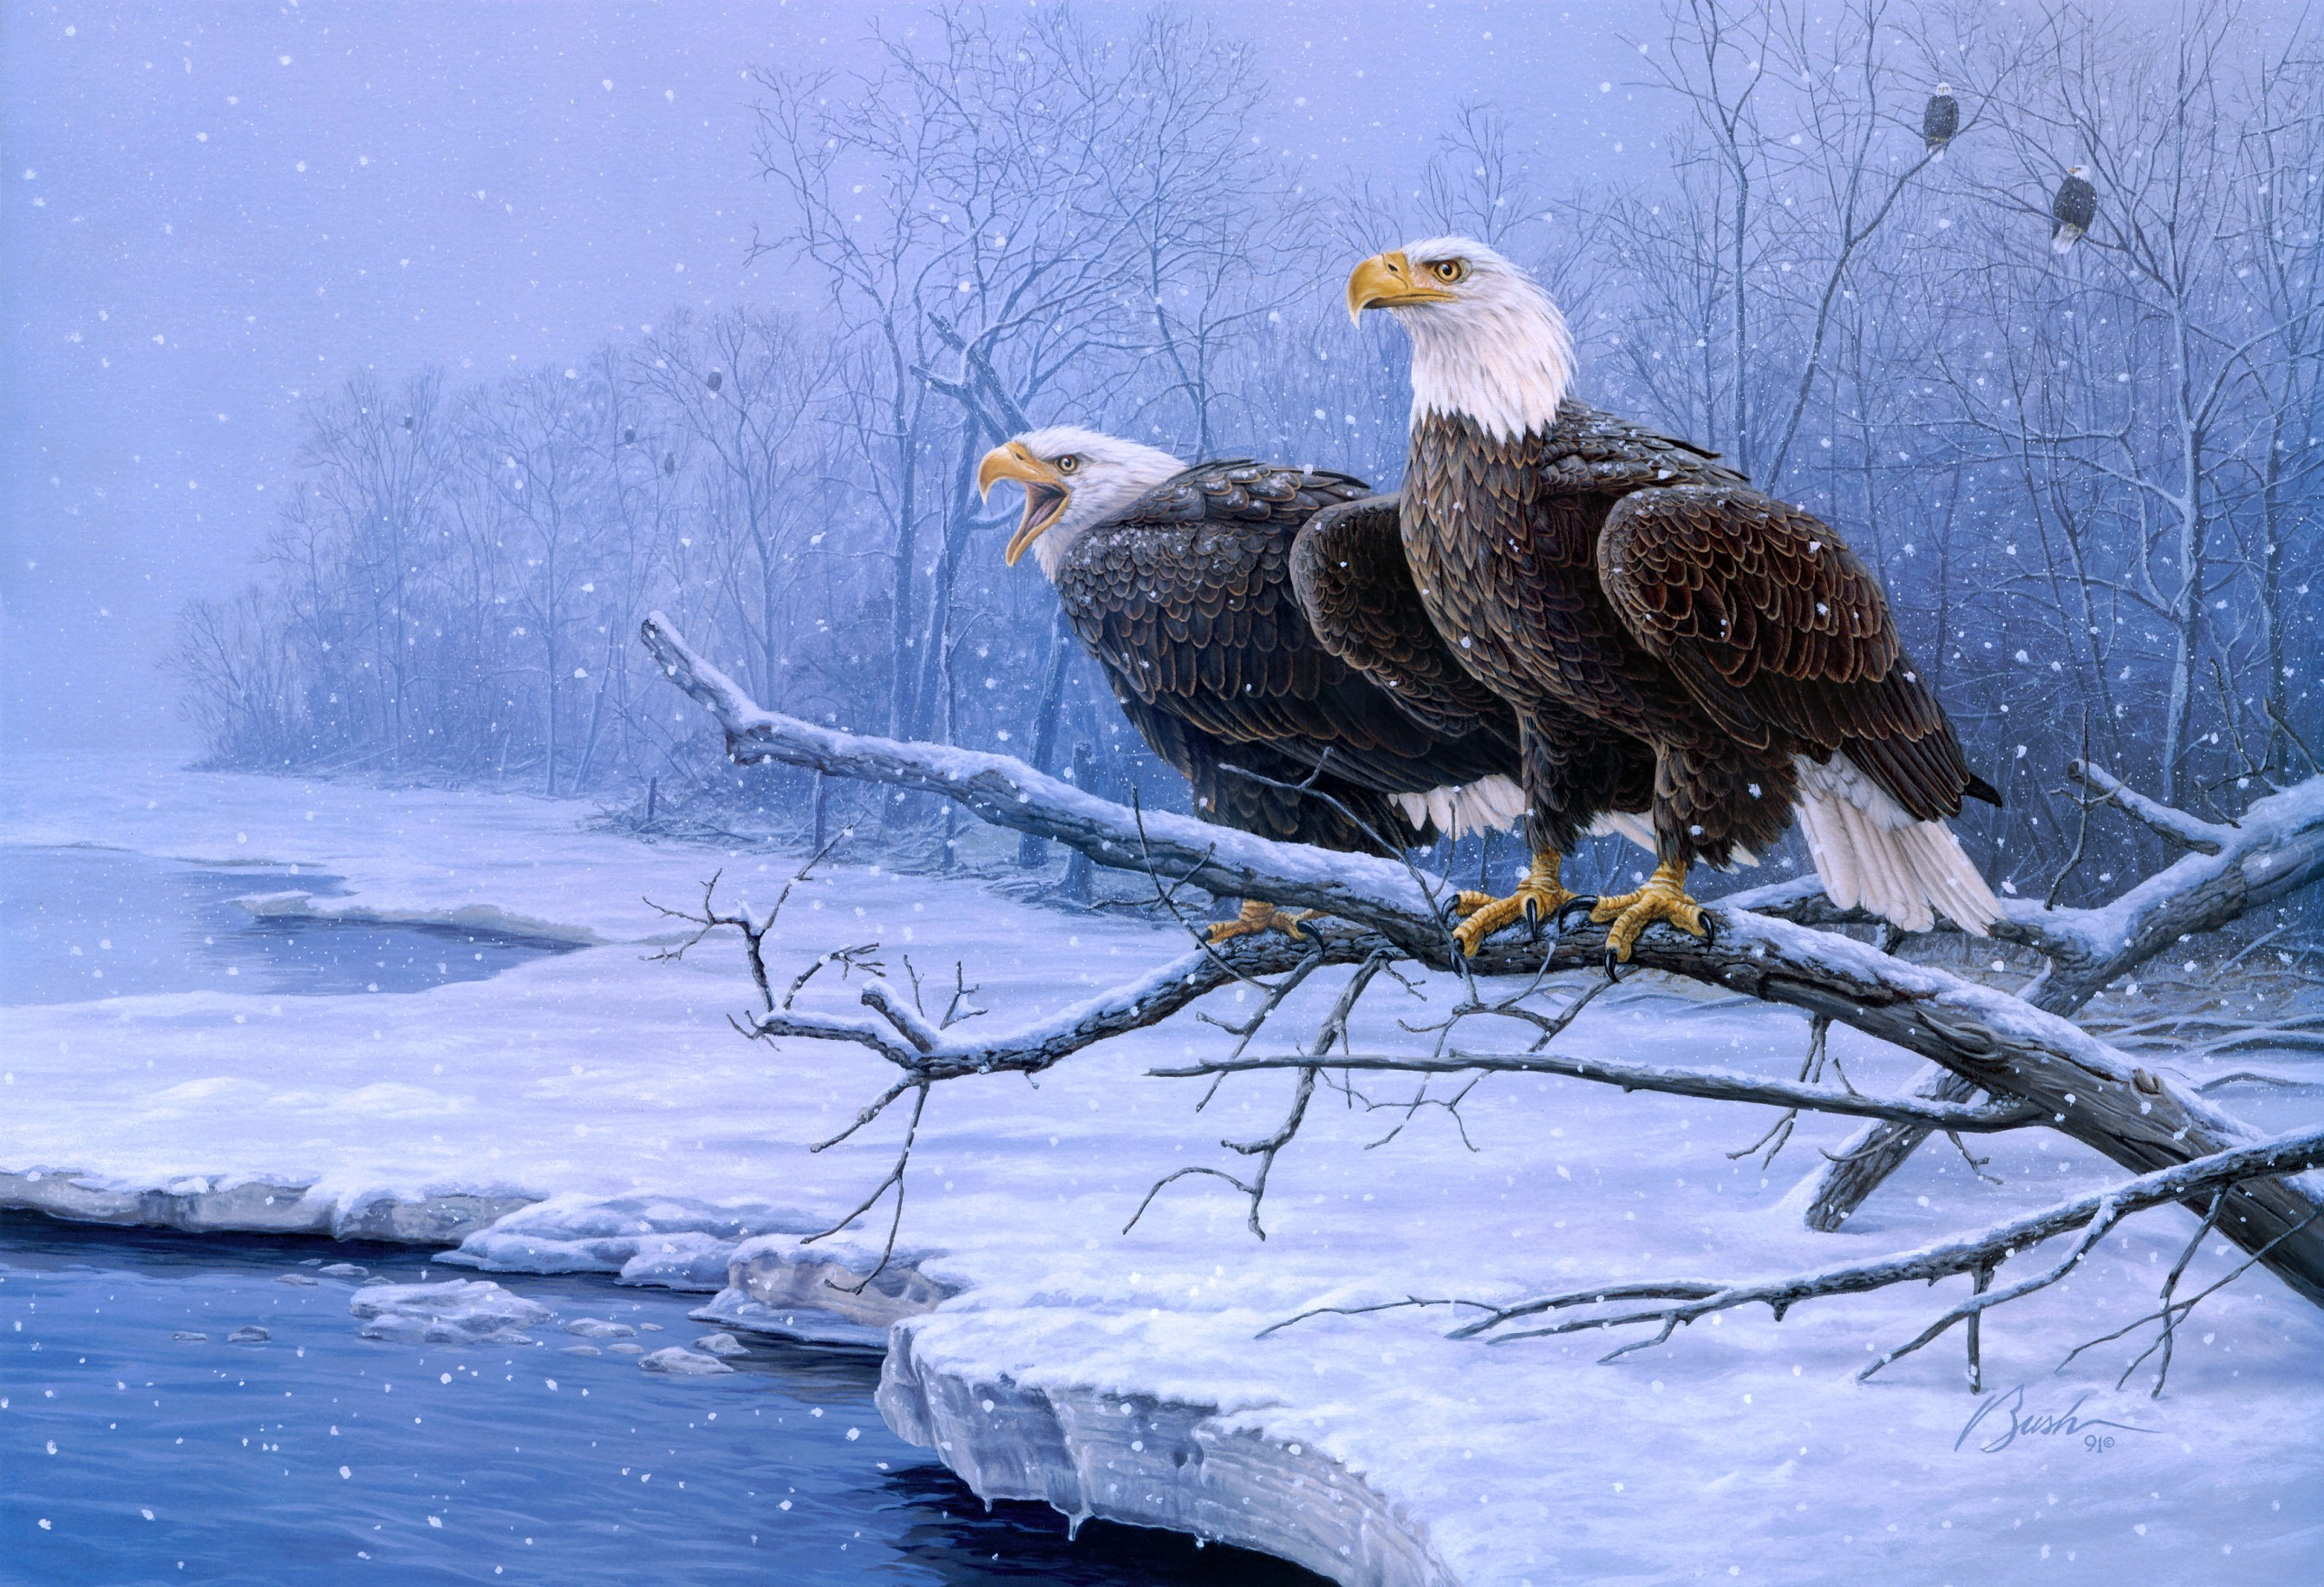 bald eagle wallpaper screensavers - wallpapersafari